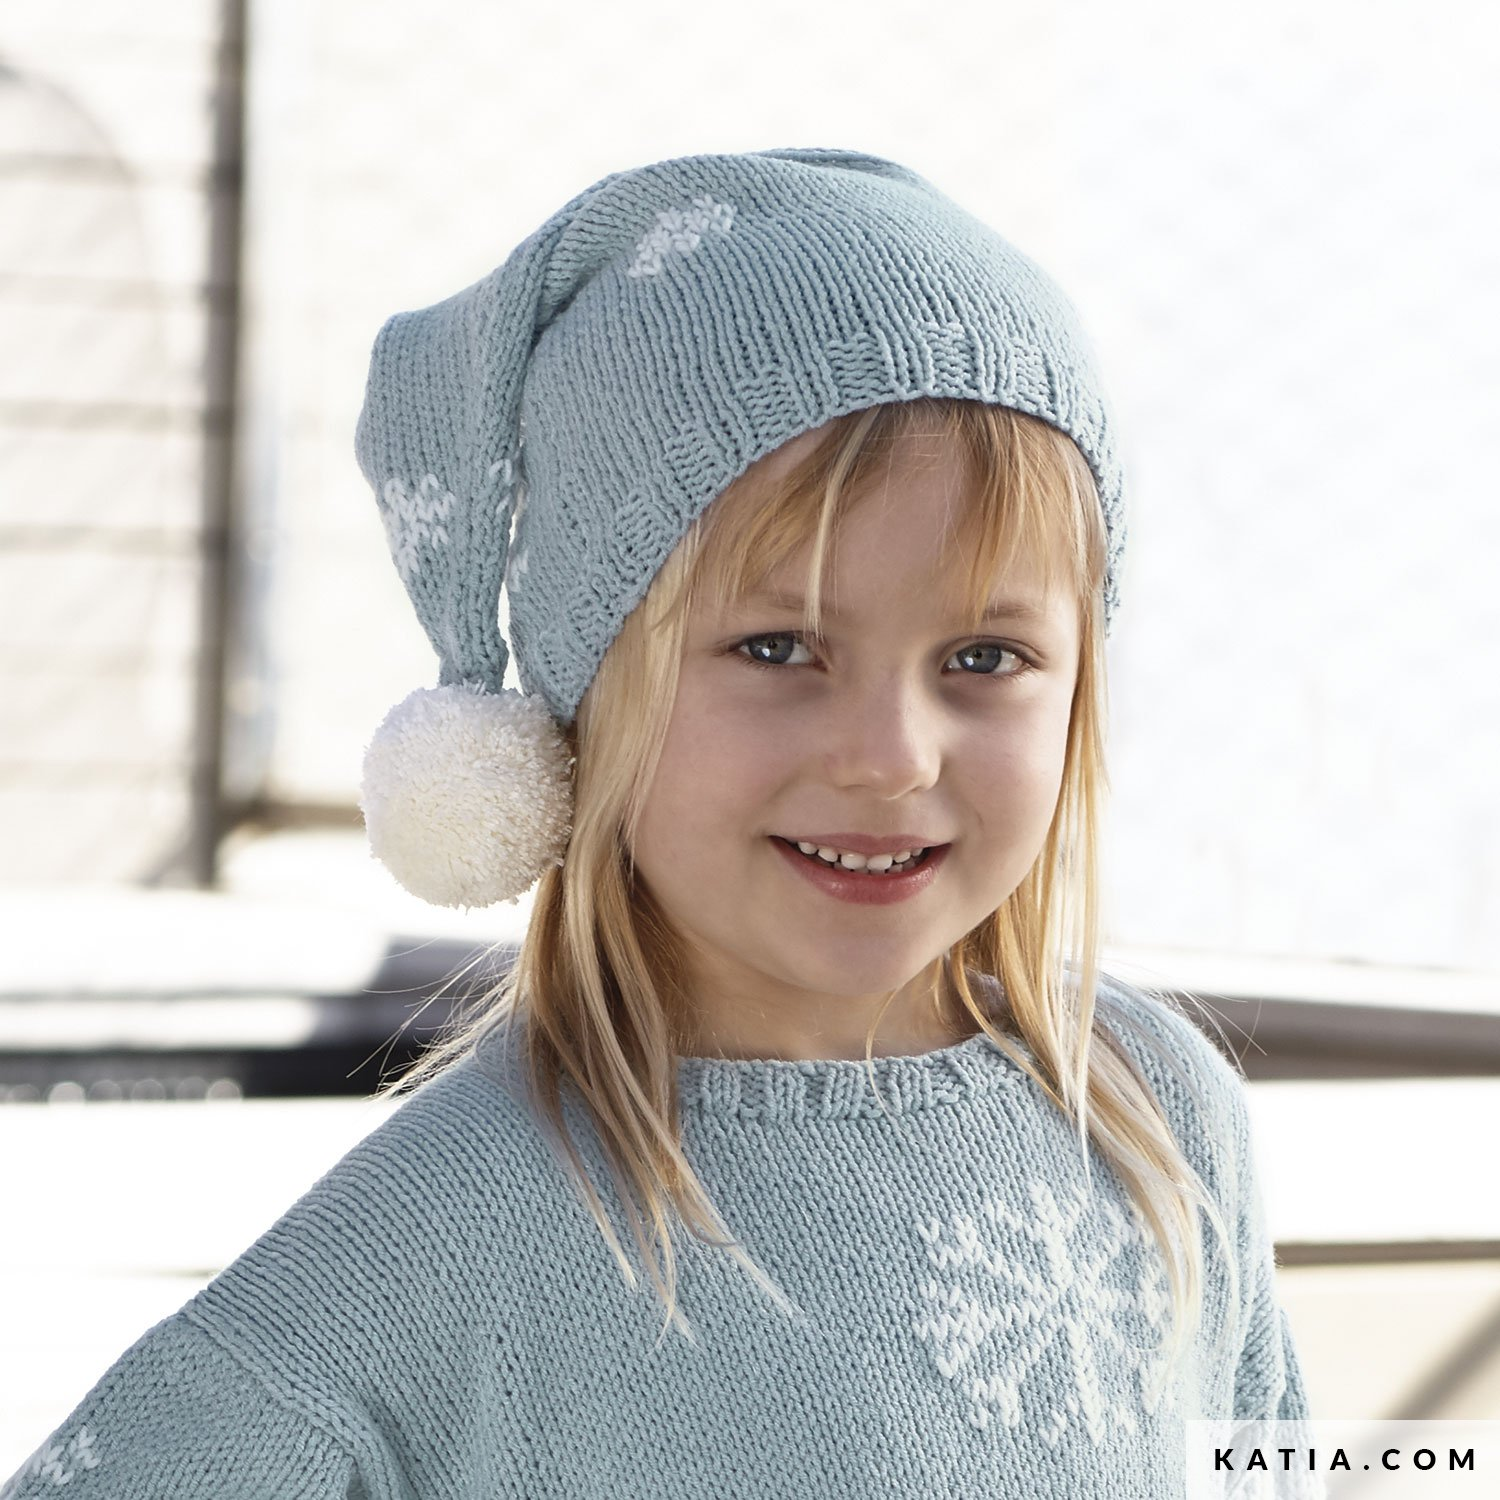 Pom pom hat in Atlantic. Patterned knit hat with pom poms bb1161dc6be